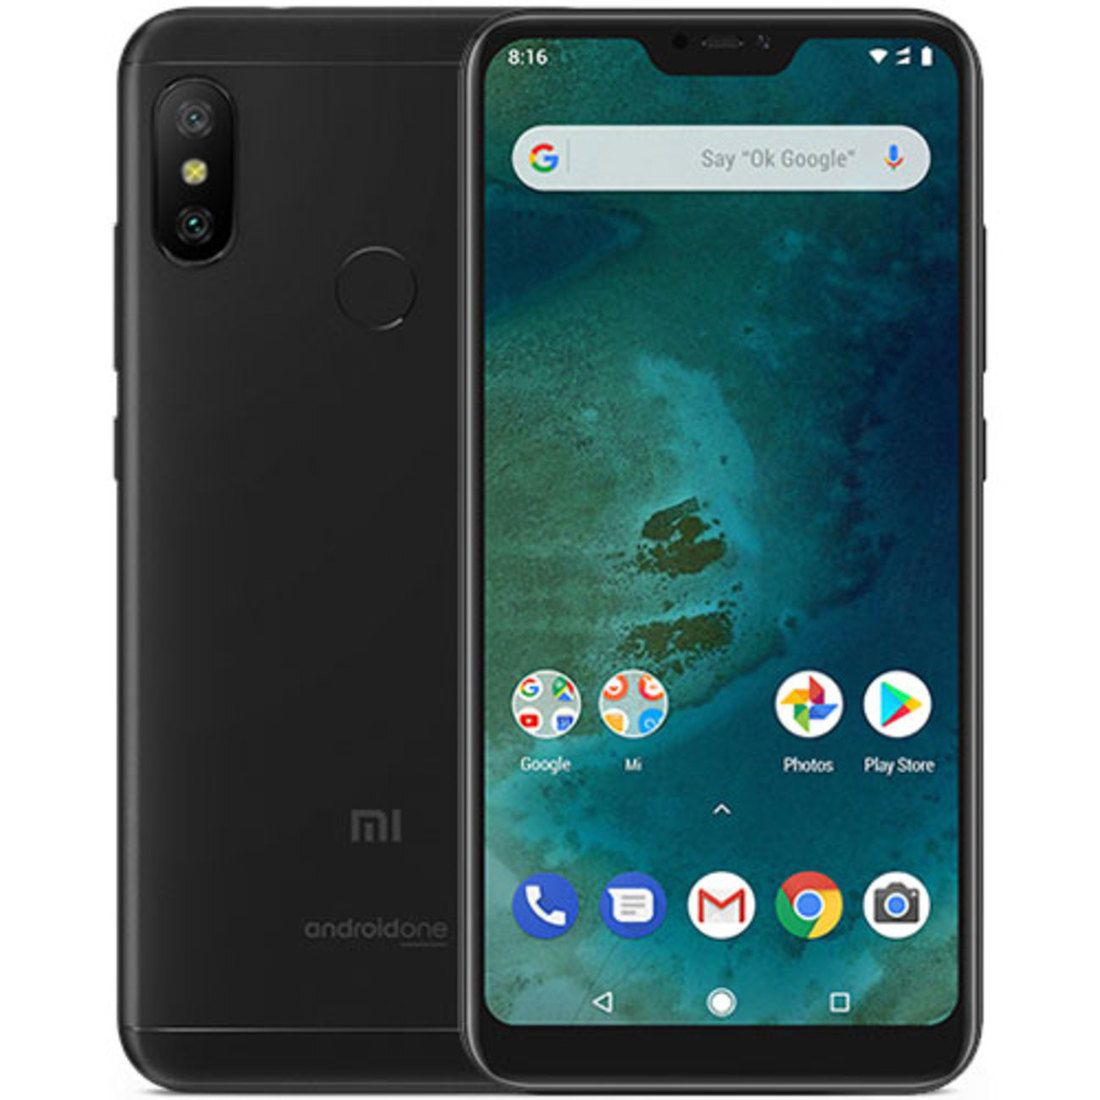 Smartphone Mi A2 Lite 3GB Ram Tela 5.84 32GB Camera Dupla 12+5MP - Preto